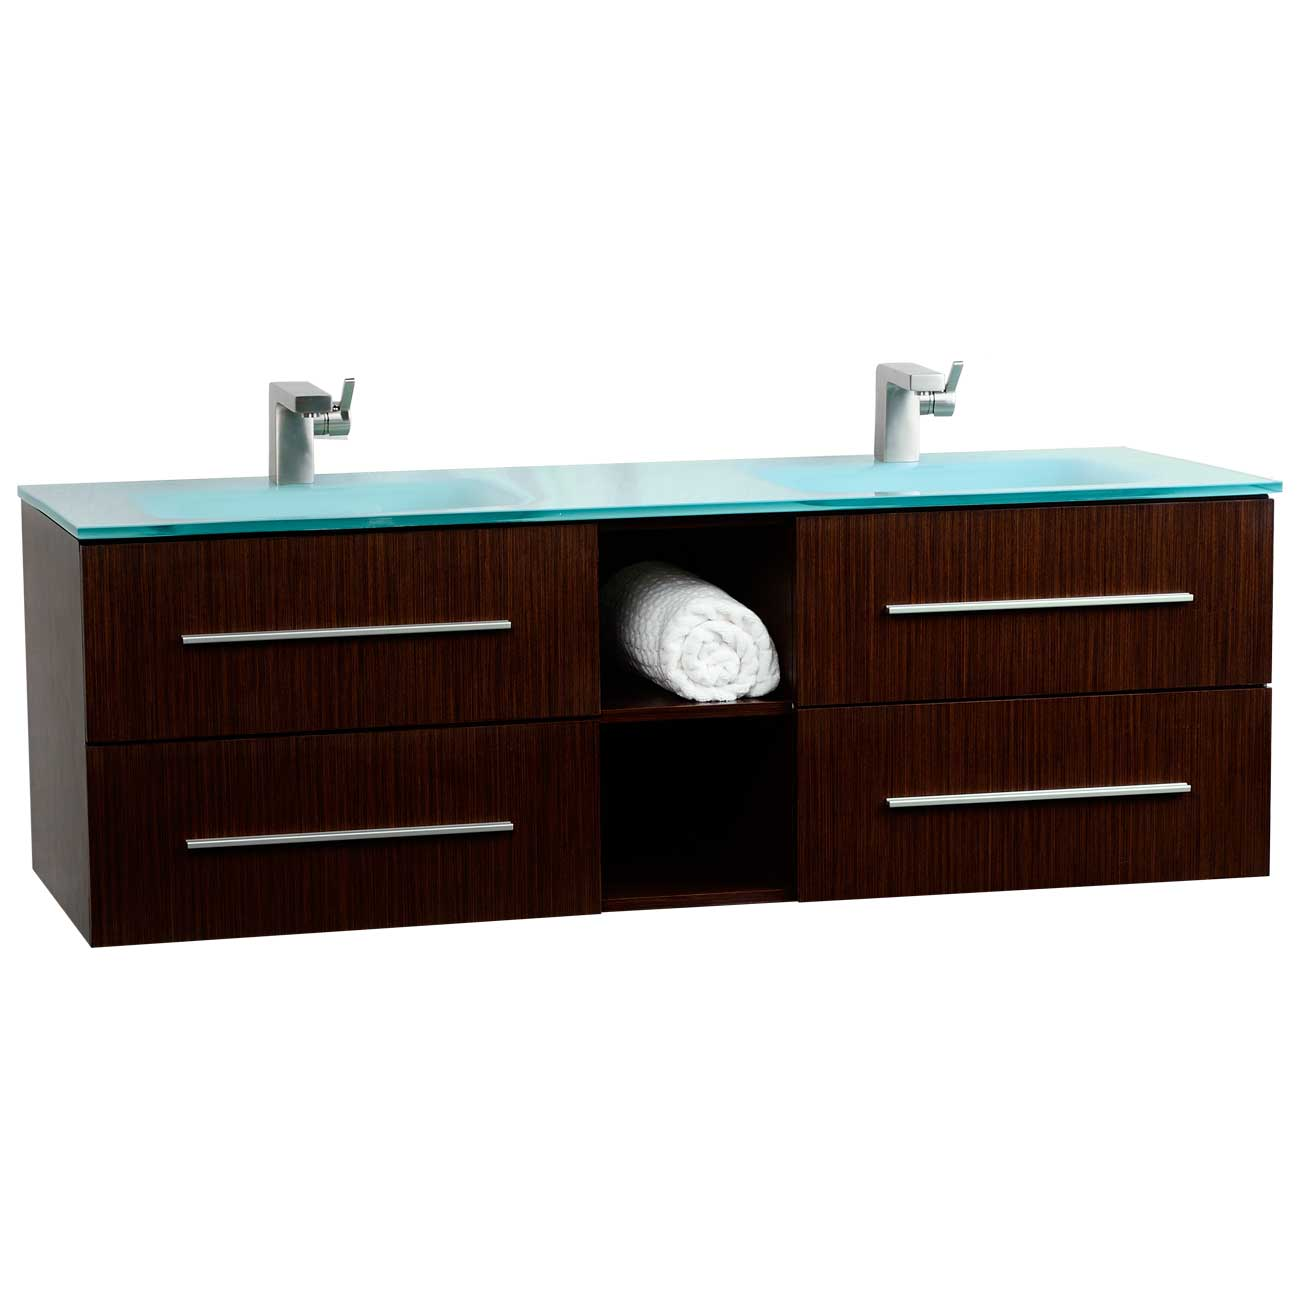 Savona 60 wall mounted double bathroom vanity set vm for Bathroom wall vanity cabinets